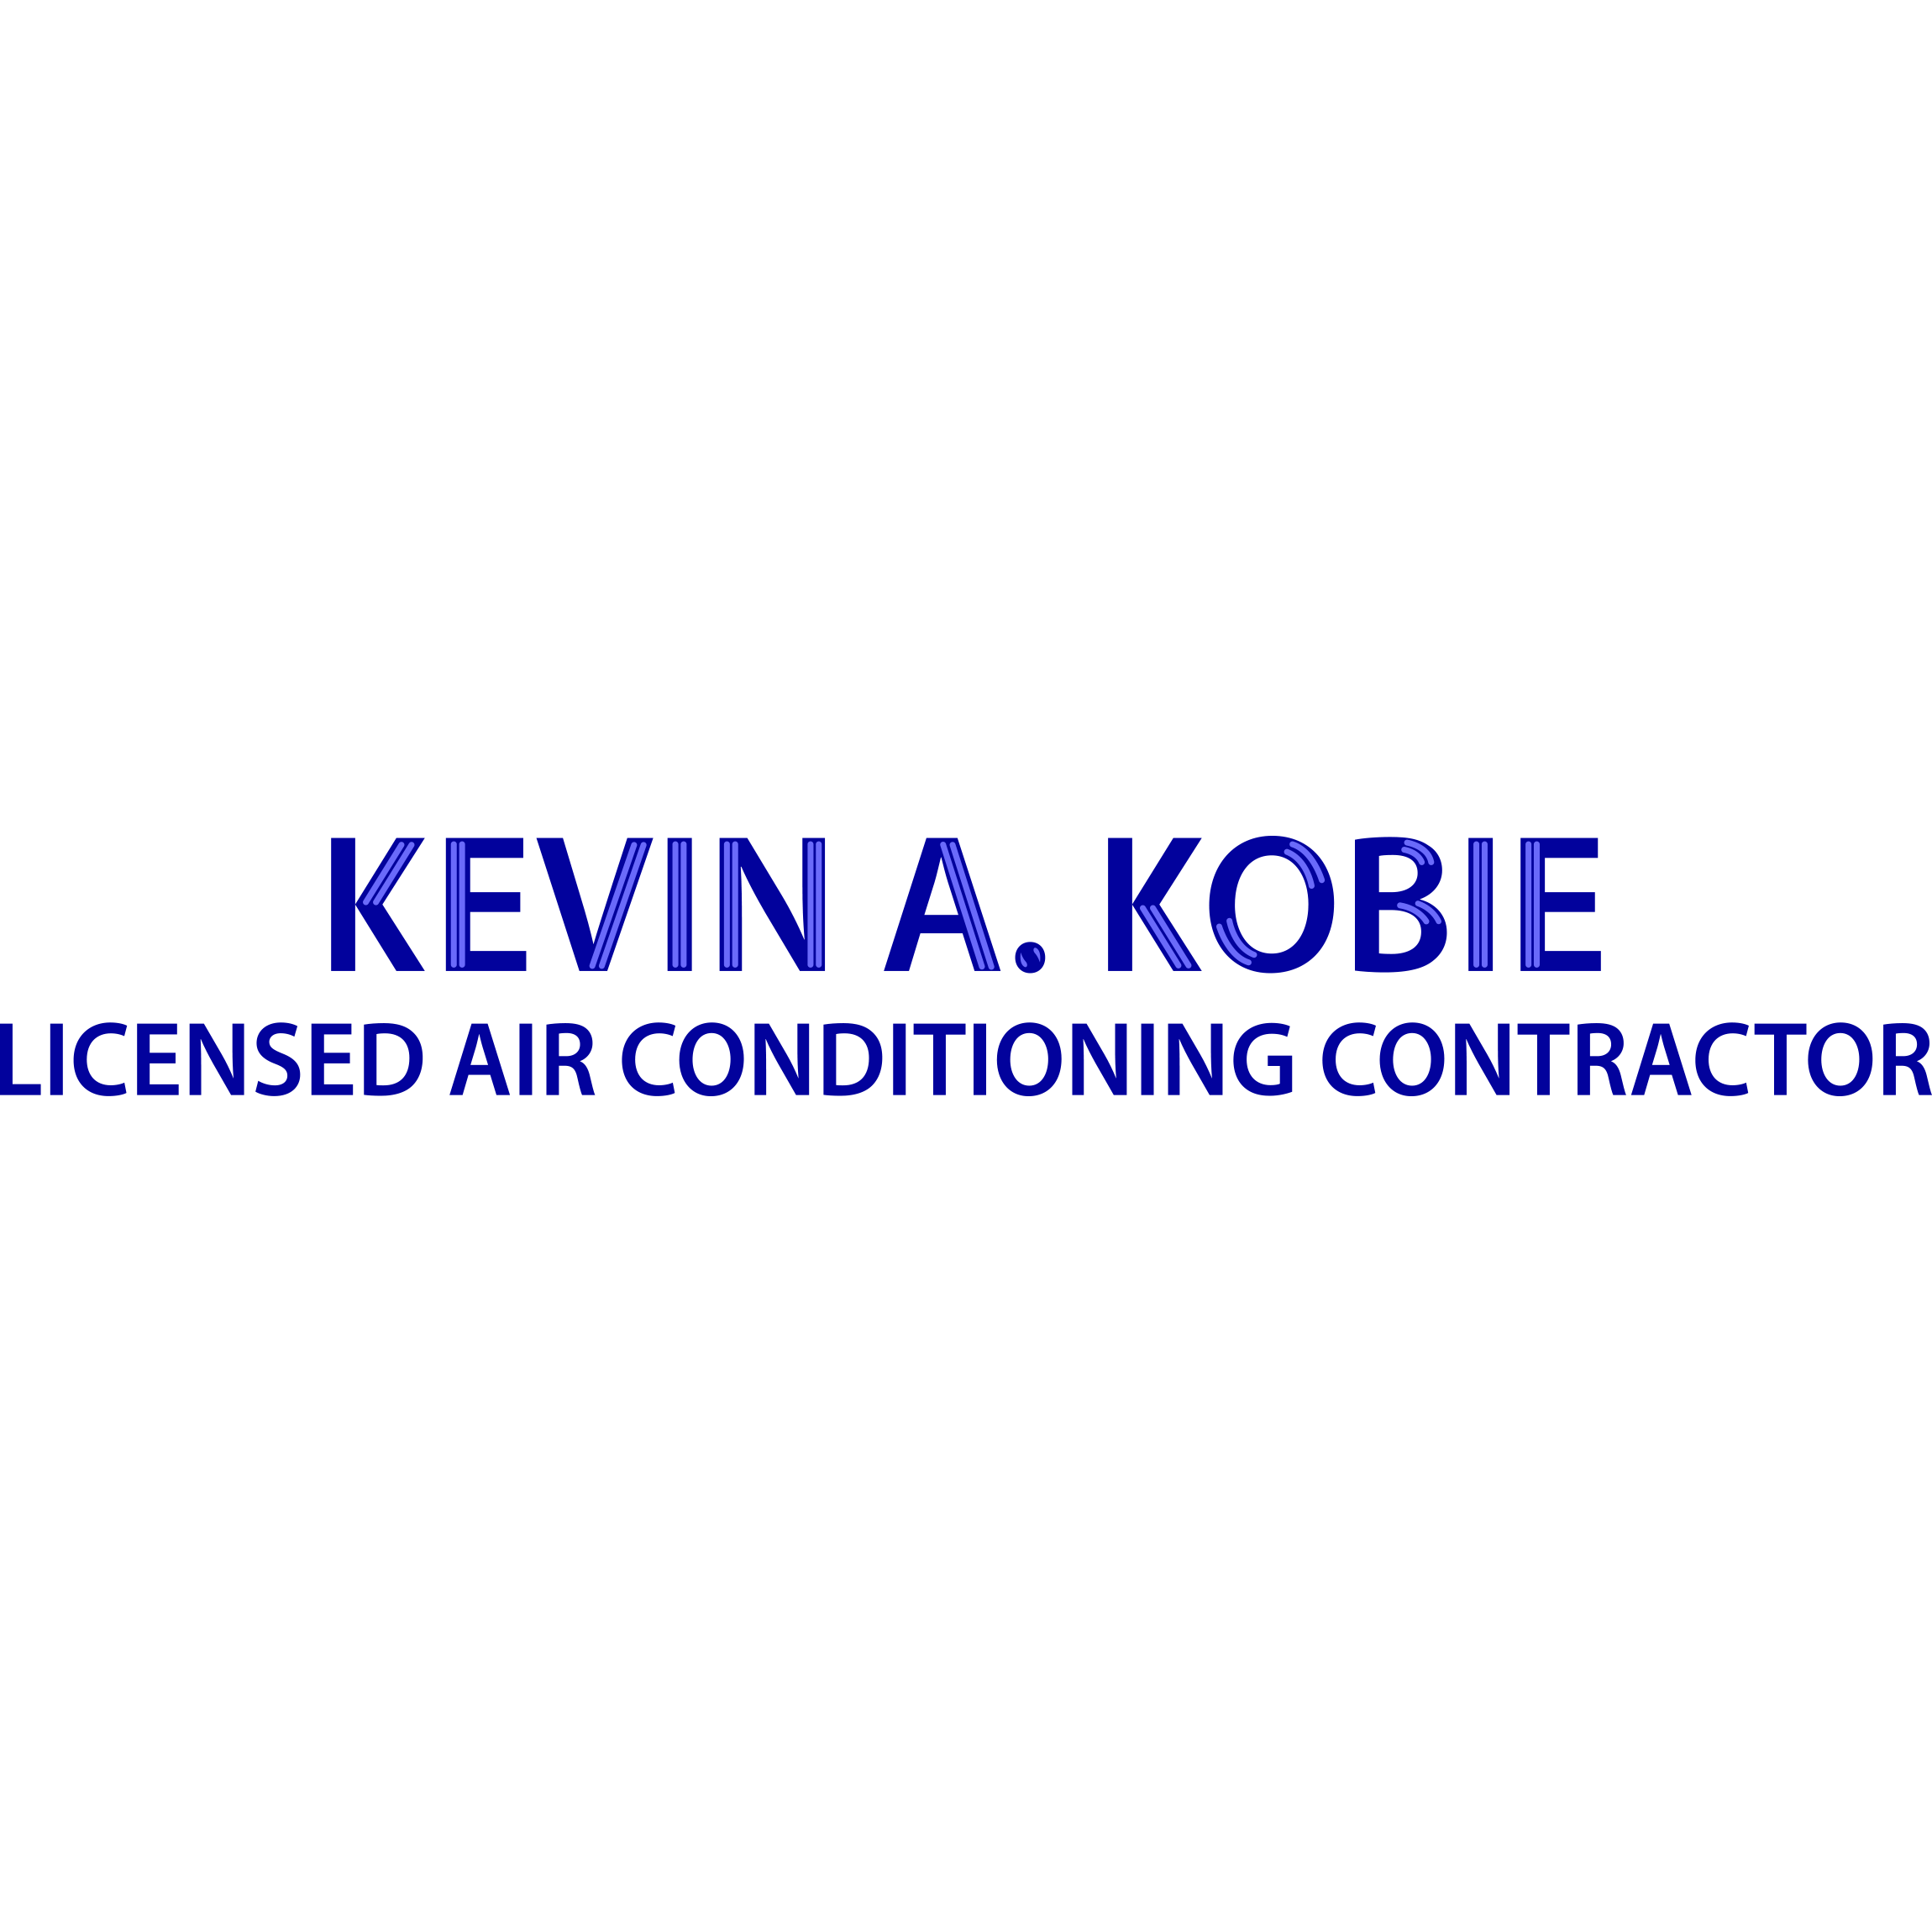 Kevin A. Kobie Air Conditioning Contractor